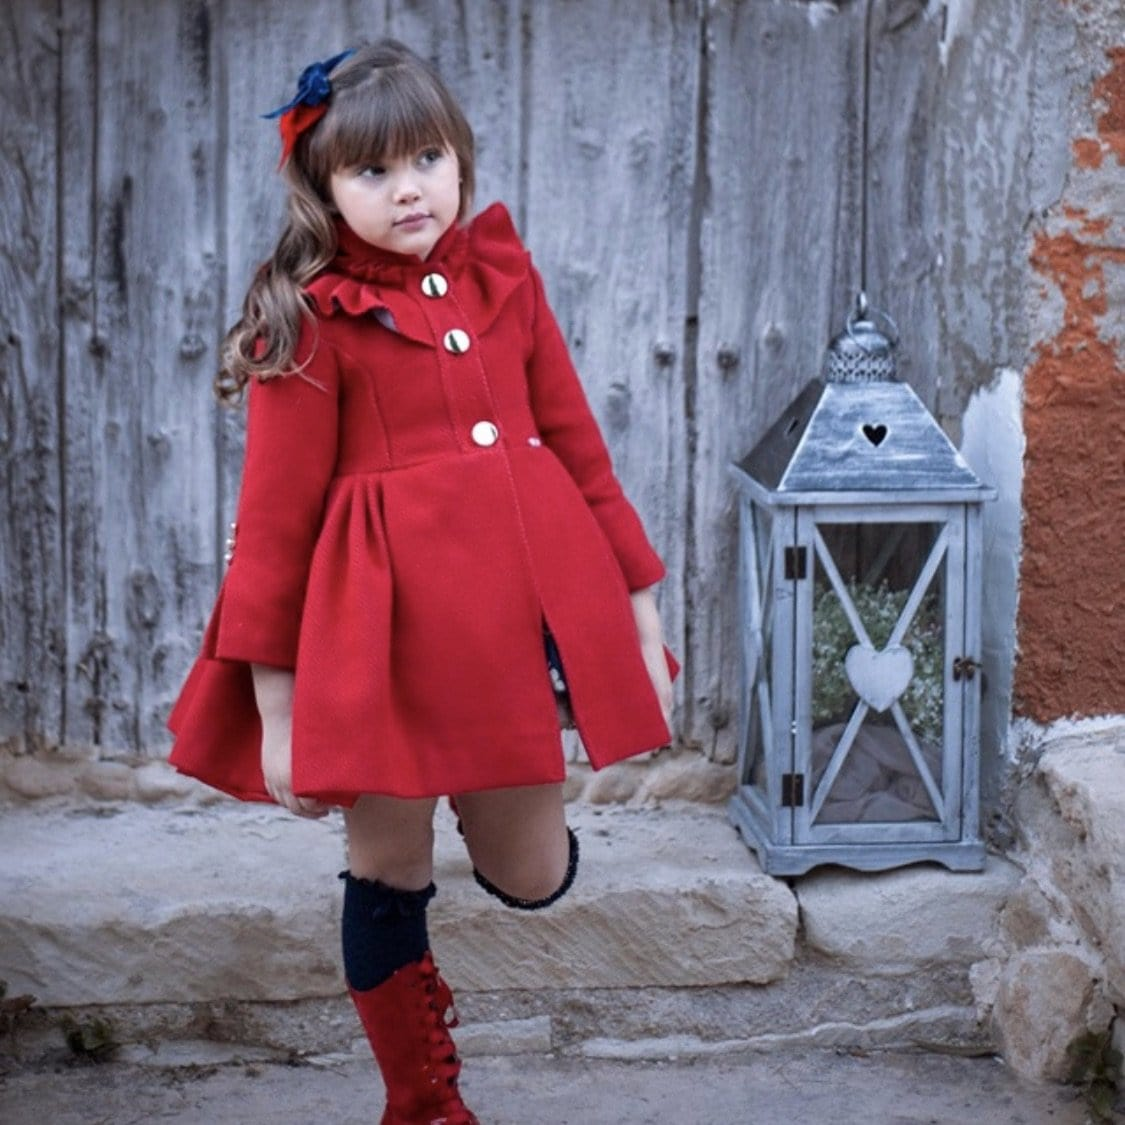 LA AMAPOLA RED PUFFBALL COAT